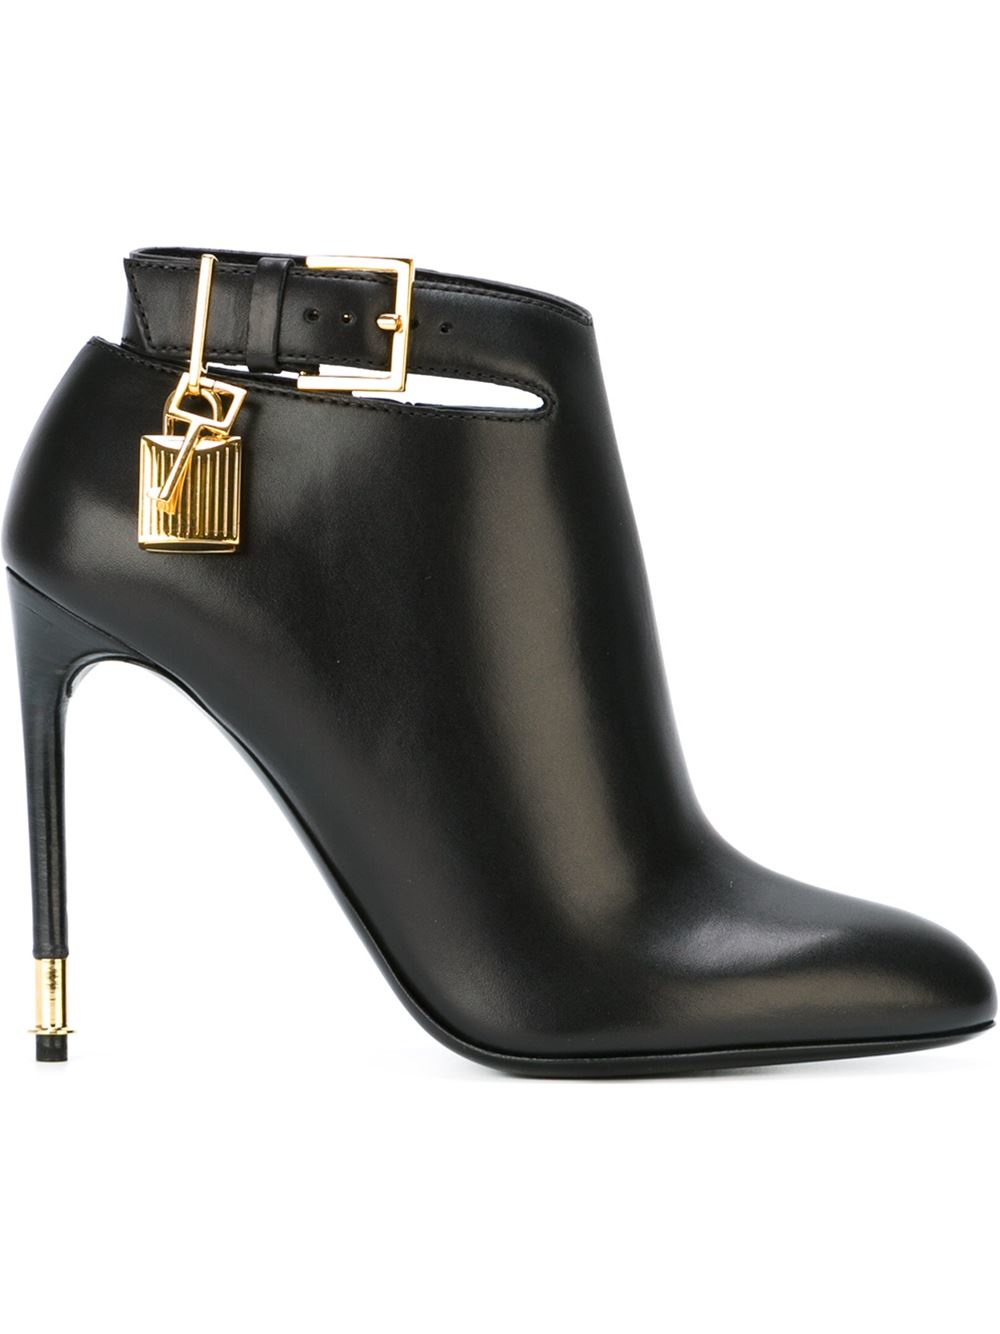 tom ford padlock charm stiletto boots in black lyst